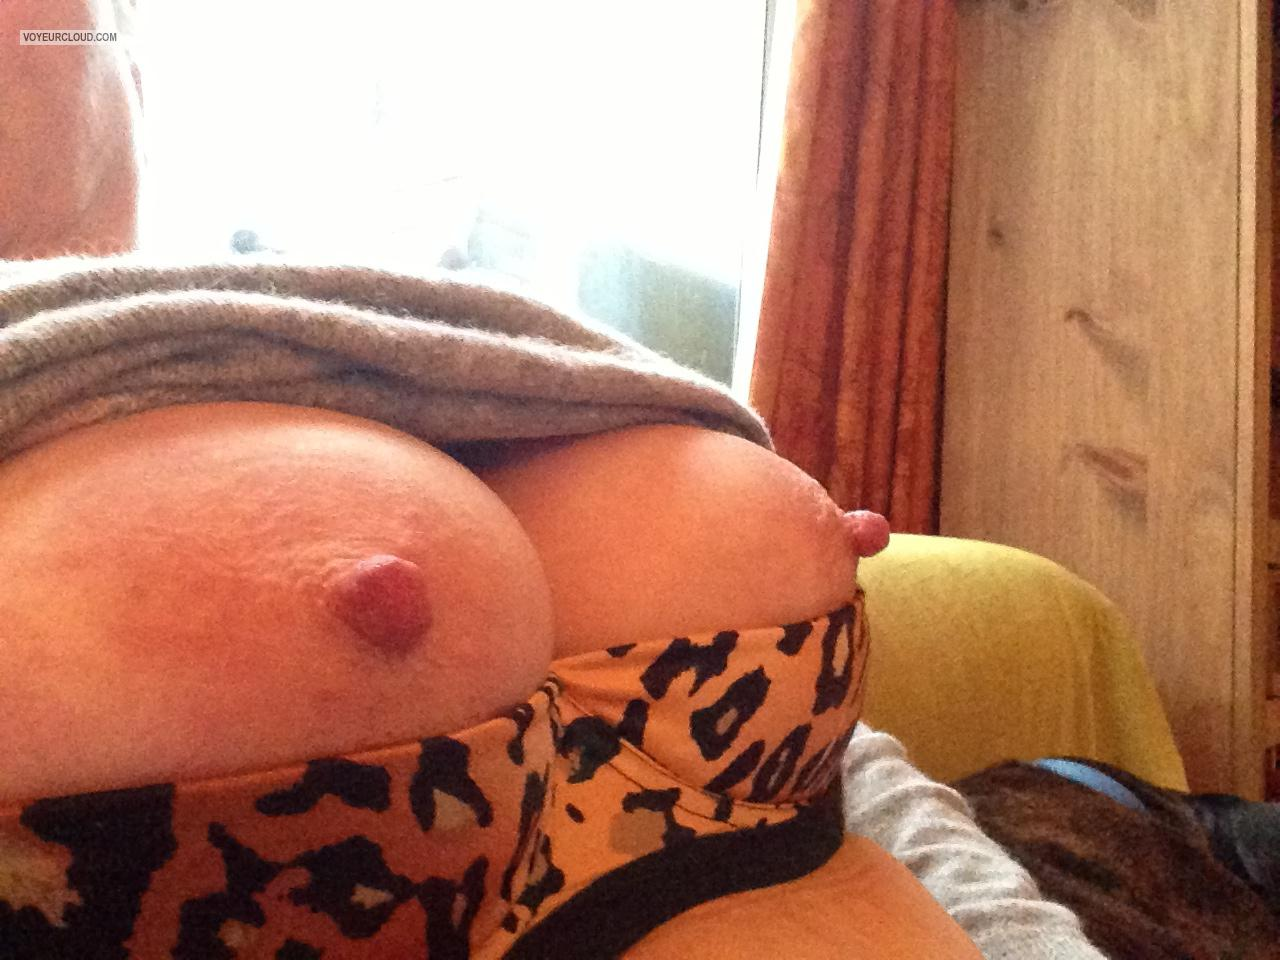 Tit Flash: My Medium Tits By IPhone (Selfie) - Hazel from United Kingdom